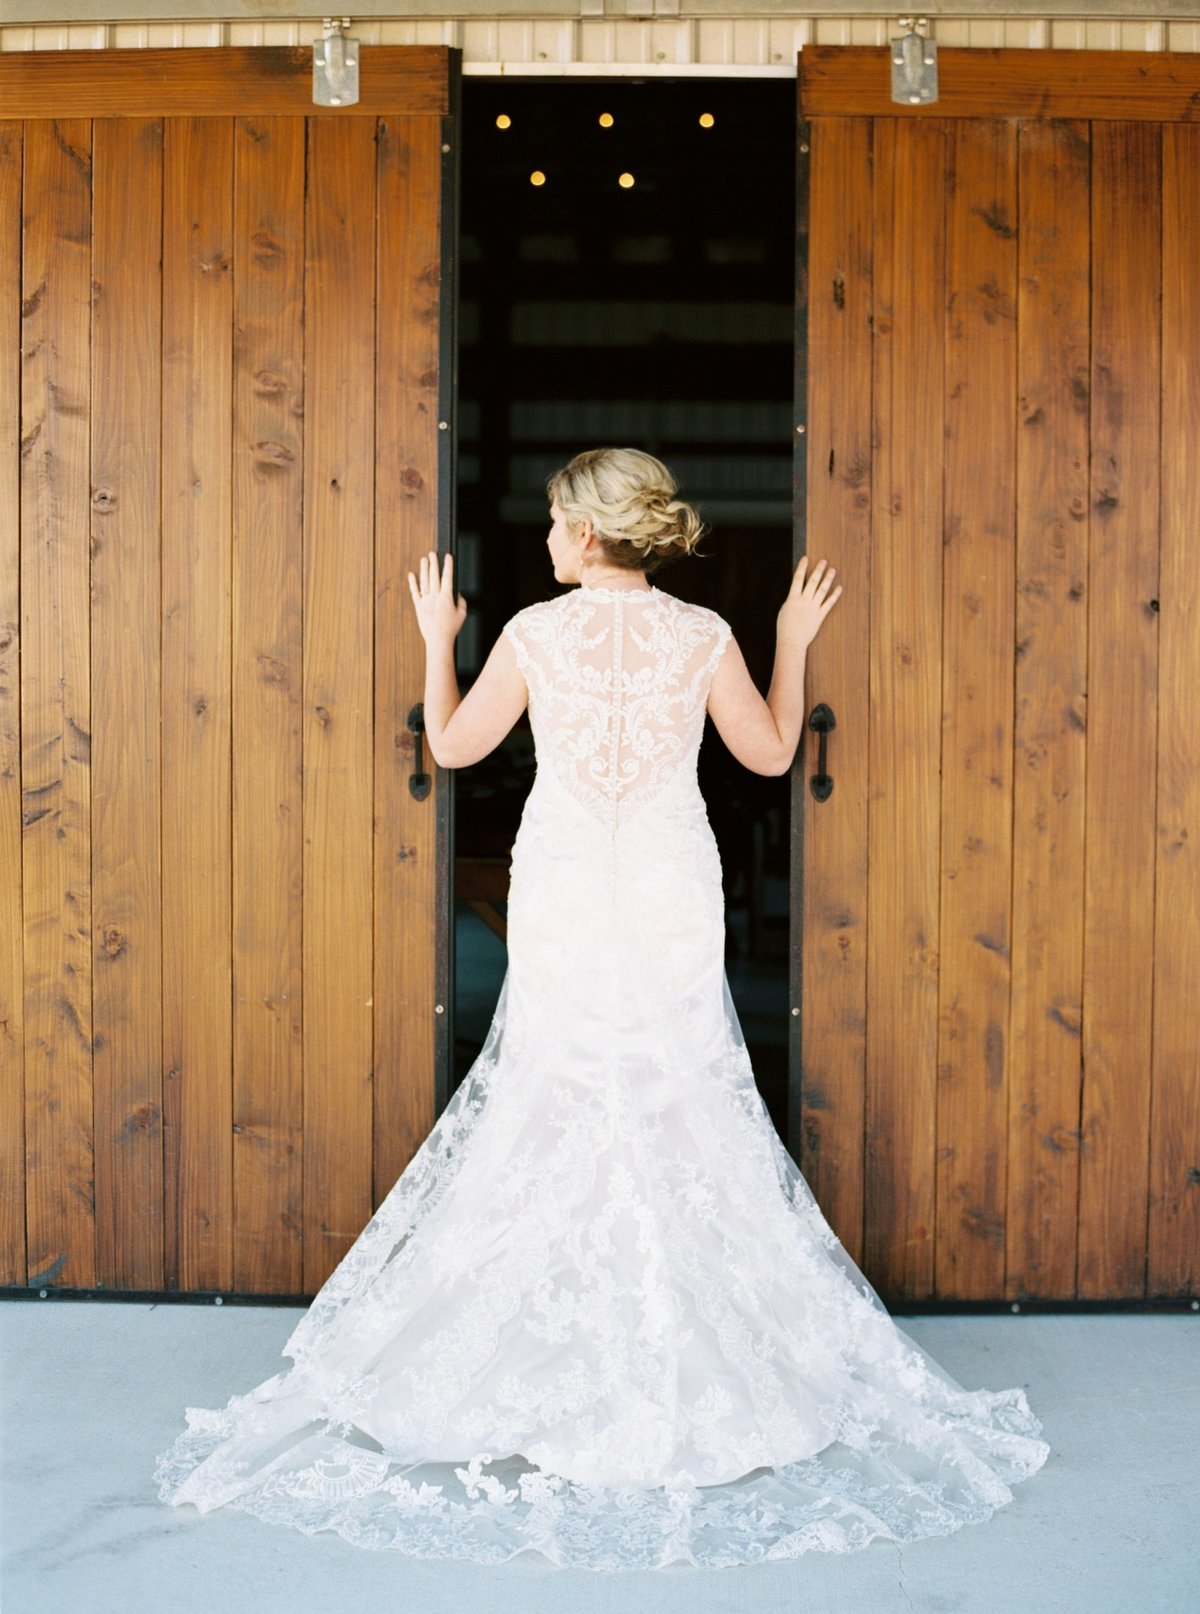 A beautiful bride at a farm house in Texas. This session was captured on film.